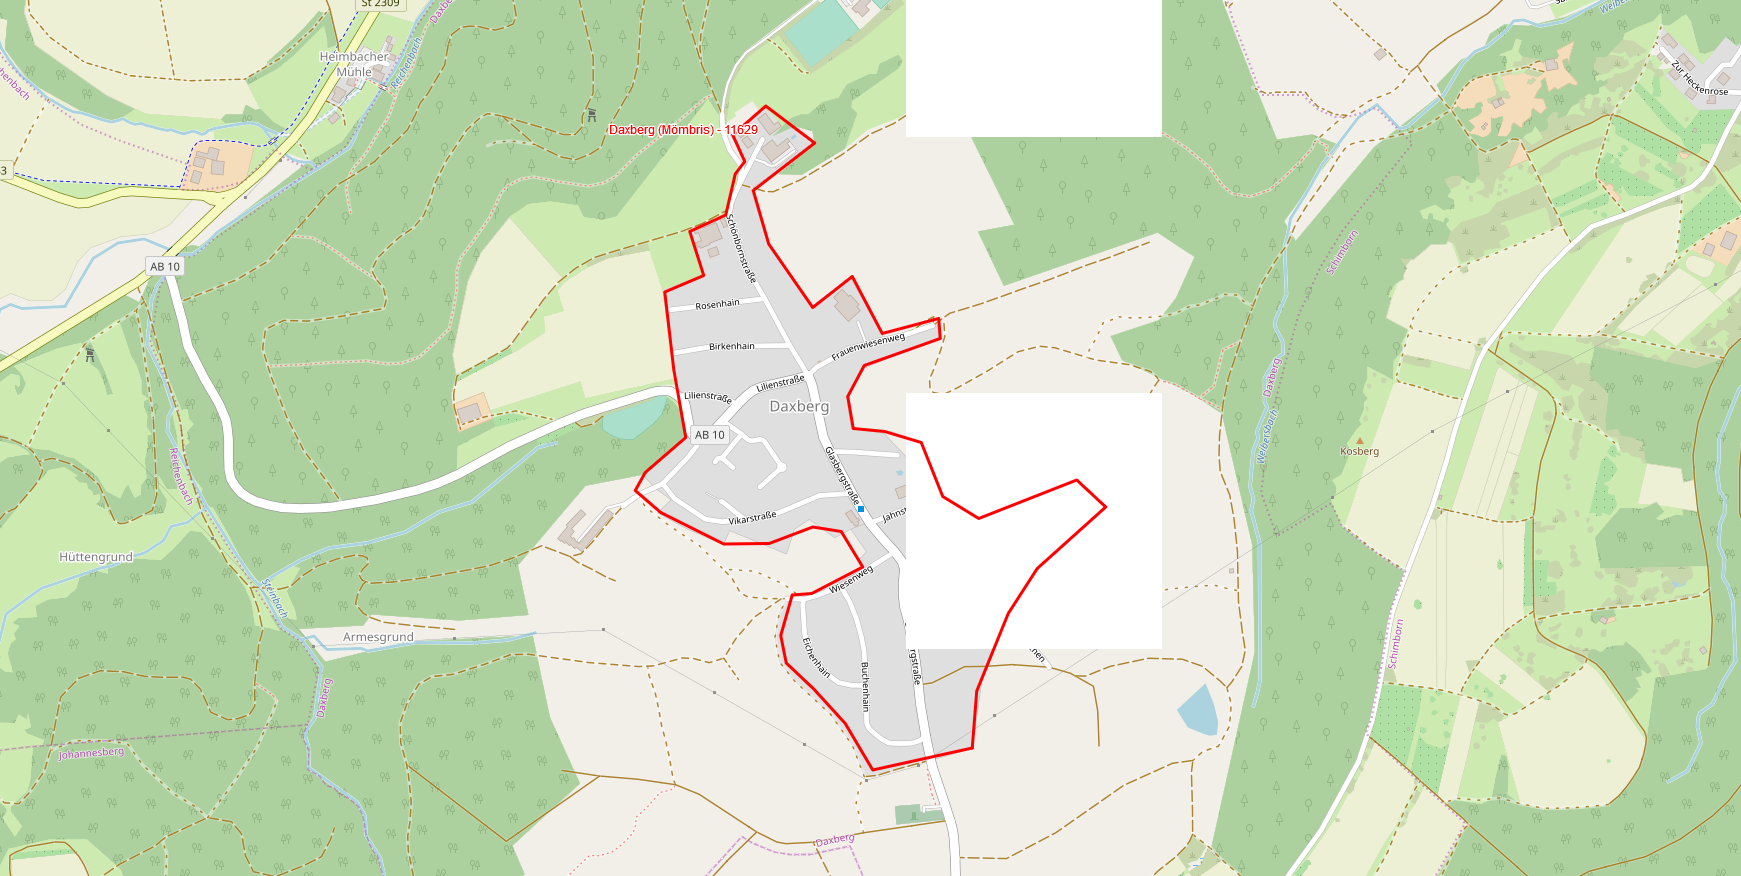 Daxberg Polygon